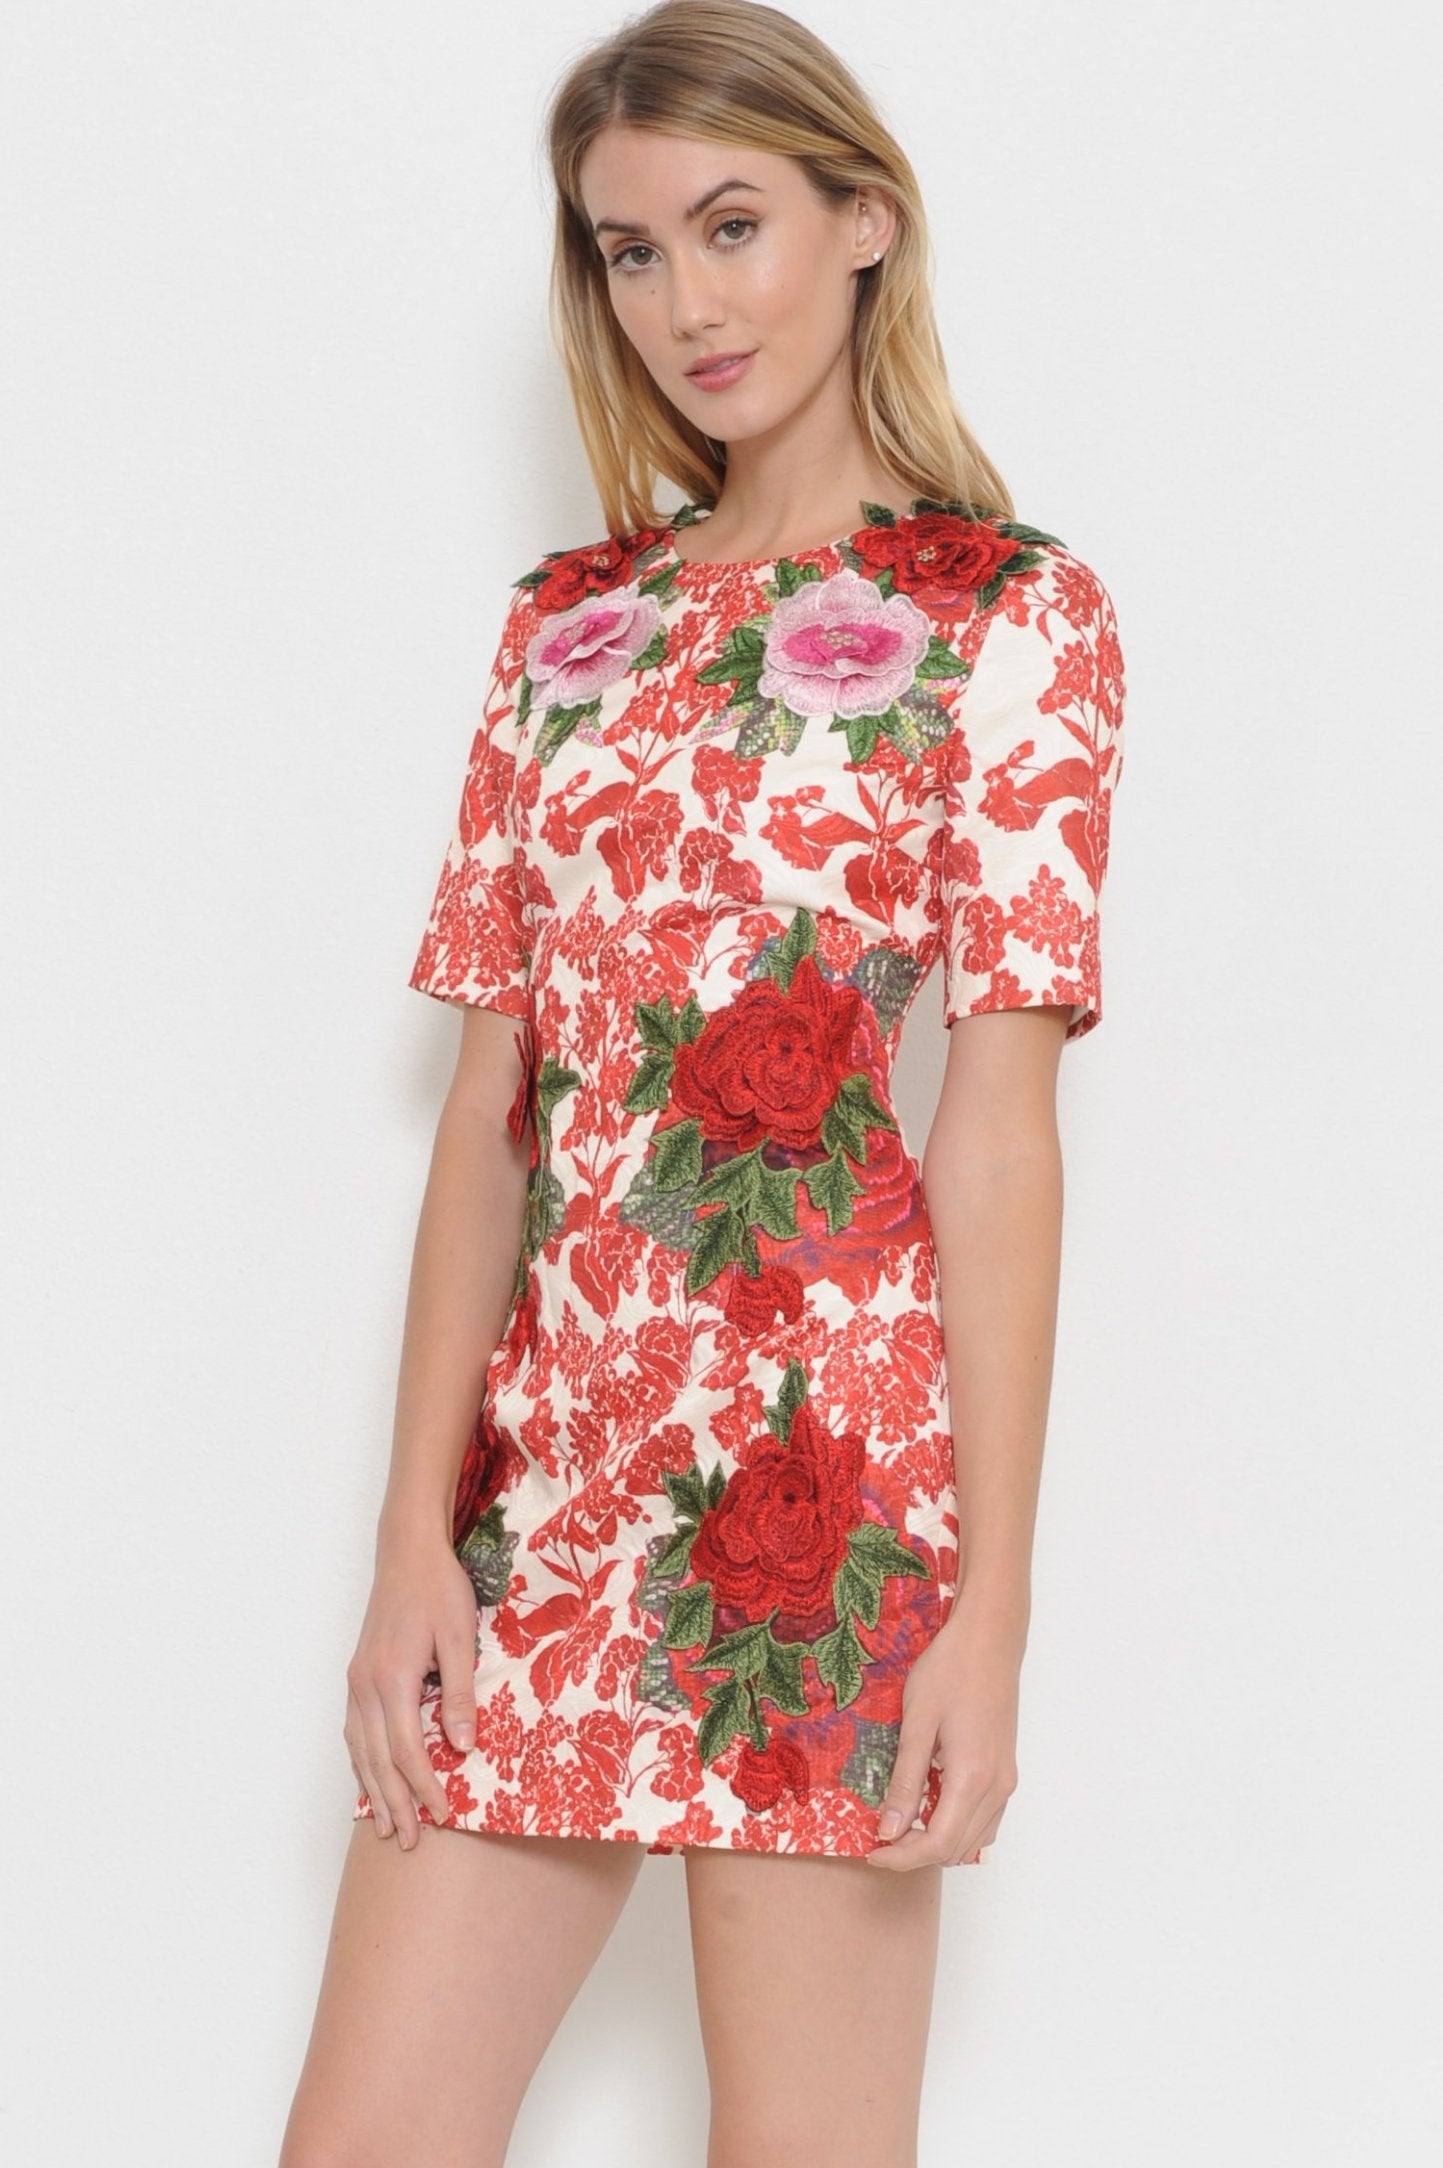 Red Garden Dress - Geegeebae